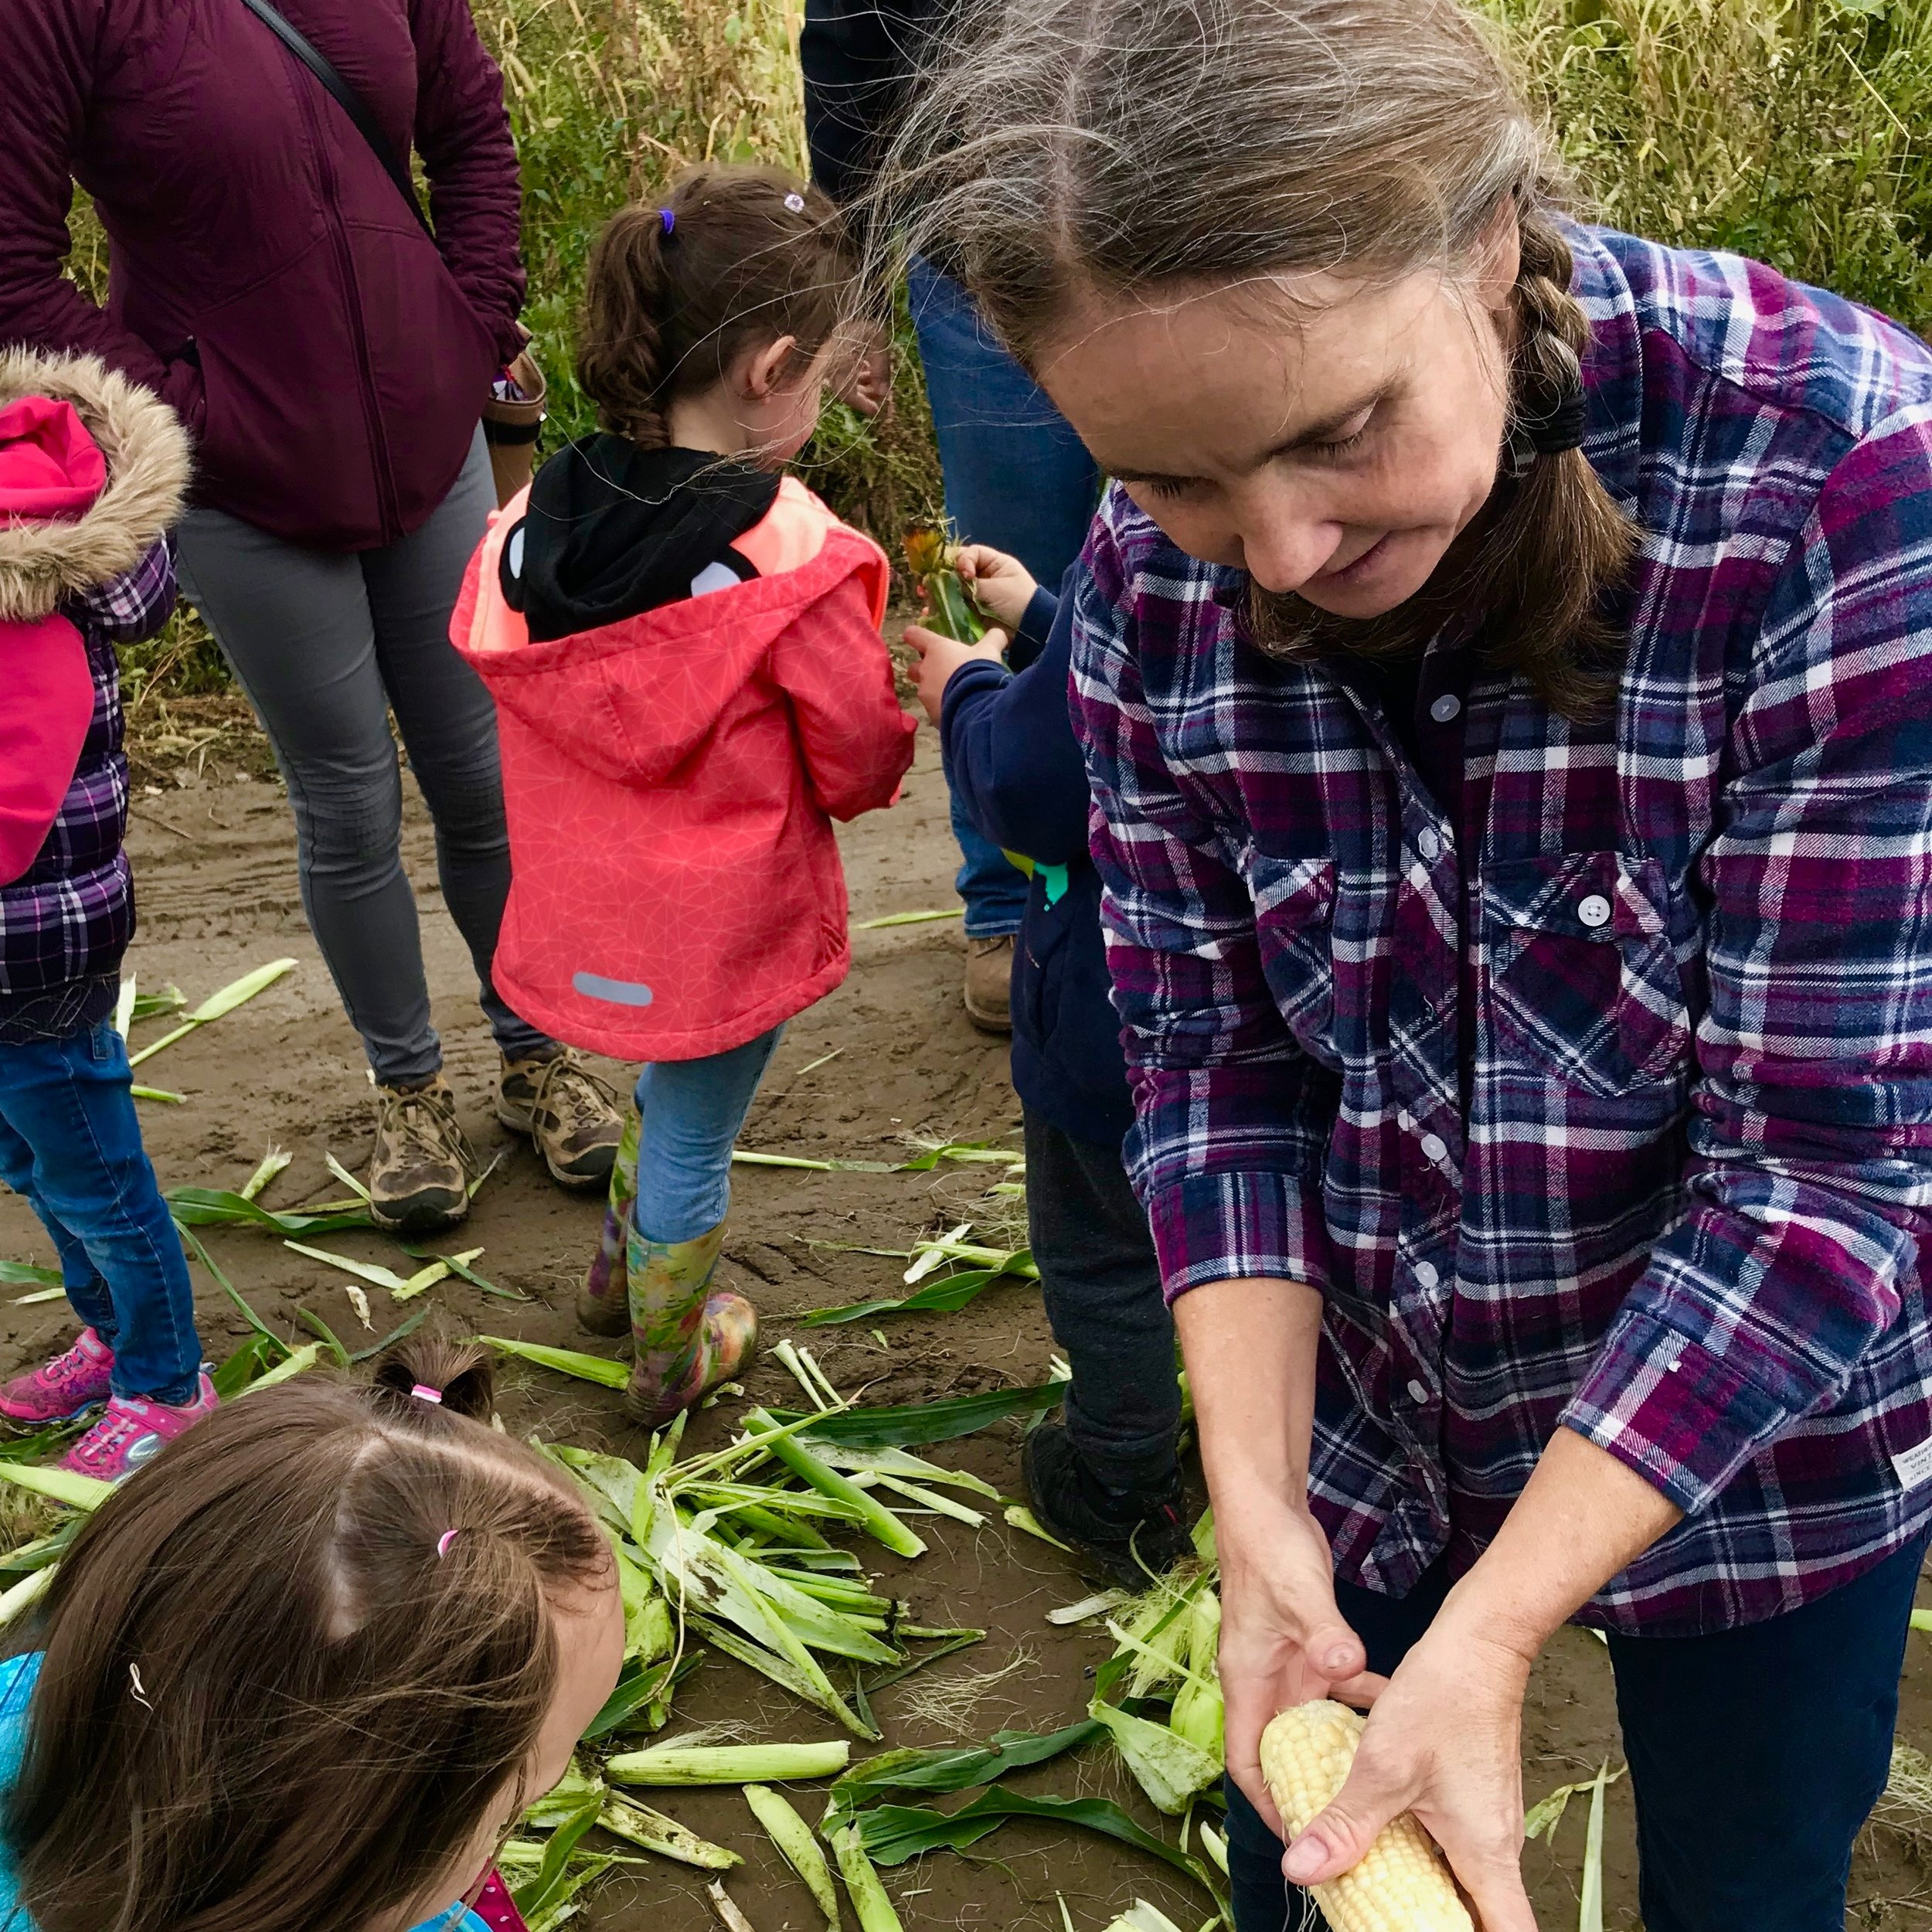 Michelle Starcic - Michelle began working on Covert Farms in 1992, she and Shelly have worked together for over 20 years. Michelle went to Permaculture school and started her own organic farm on Cortez Island for eight years. In 2009 she and her family moved back to the Okanagan and purchased a farm just down the hill from Covert Farms. Michelle now runs her own organic farm and is an Organic Verification officer. We are so blessed to have her come back each year to share her passion and knowledge